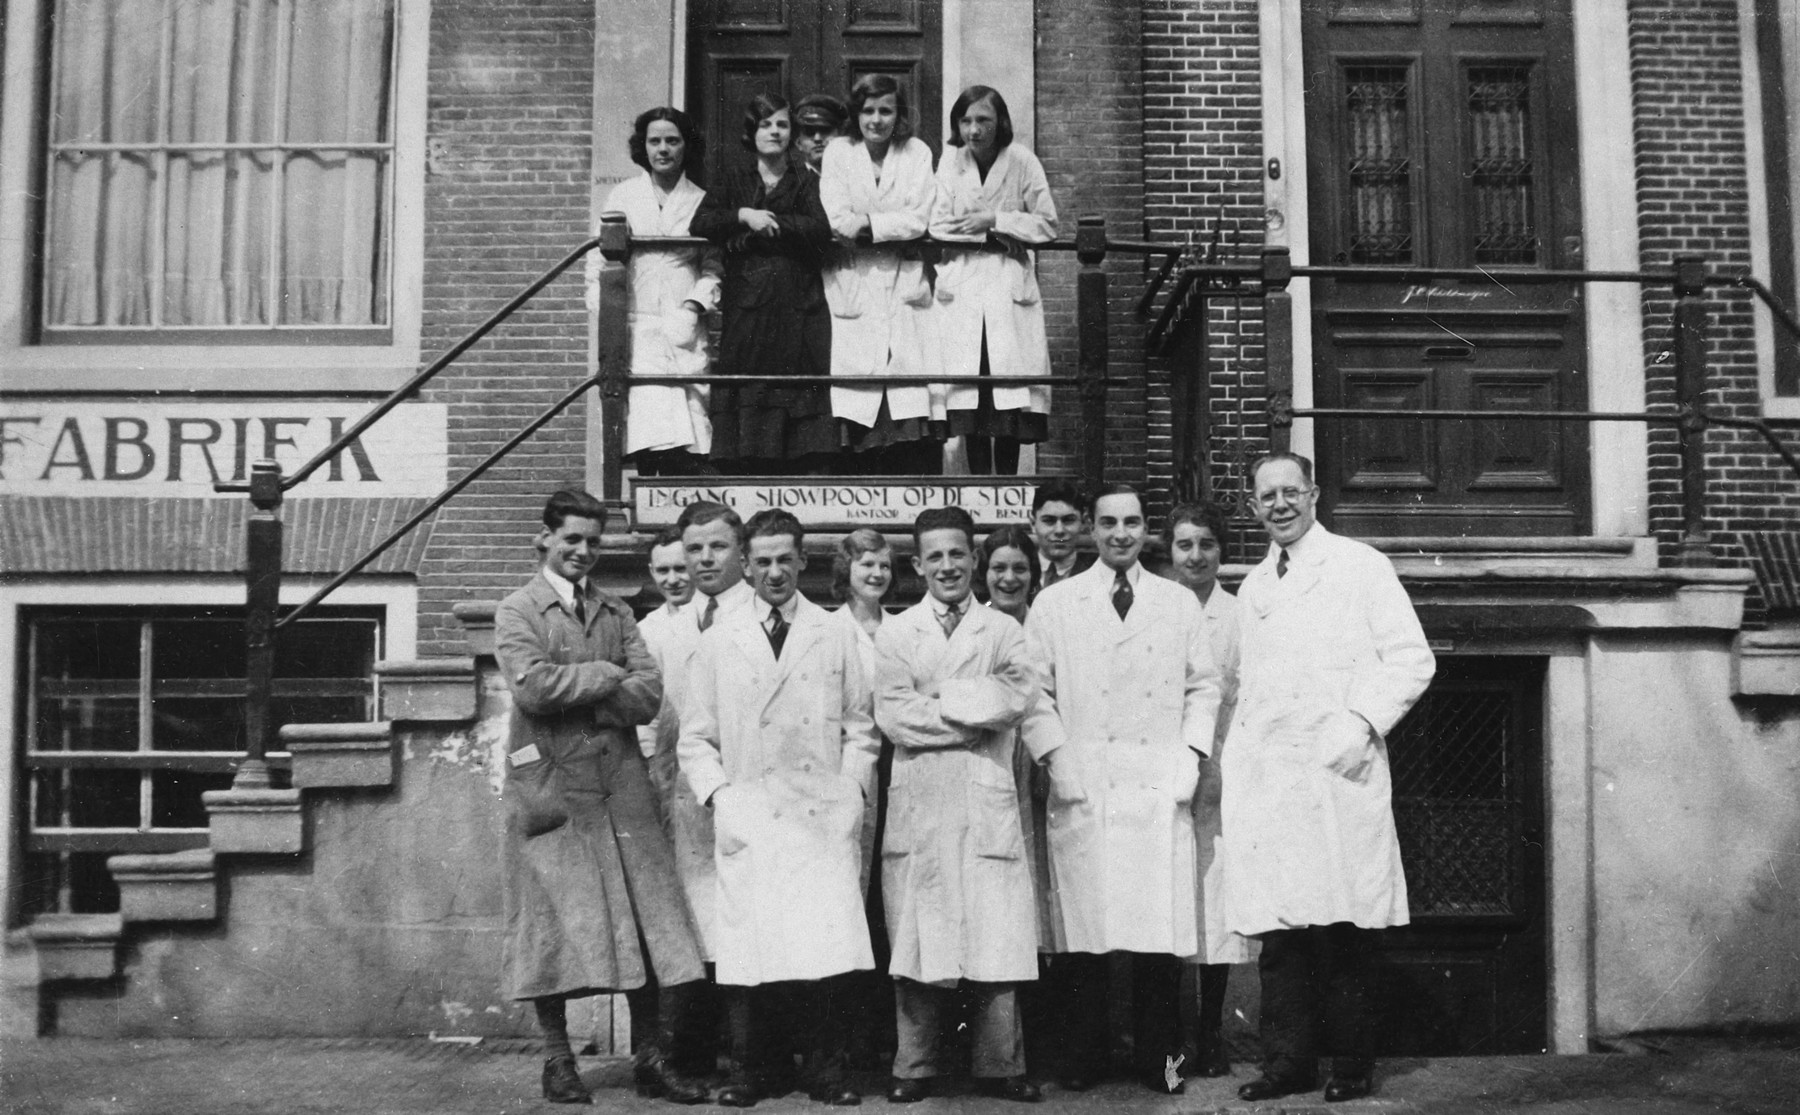 Workers pose outside the store where they work in Amsterdam.  Pictured on the top tow left is Maria Bertha Mooleman.